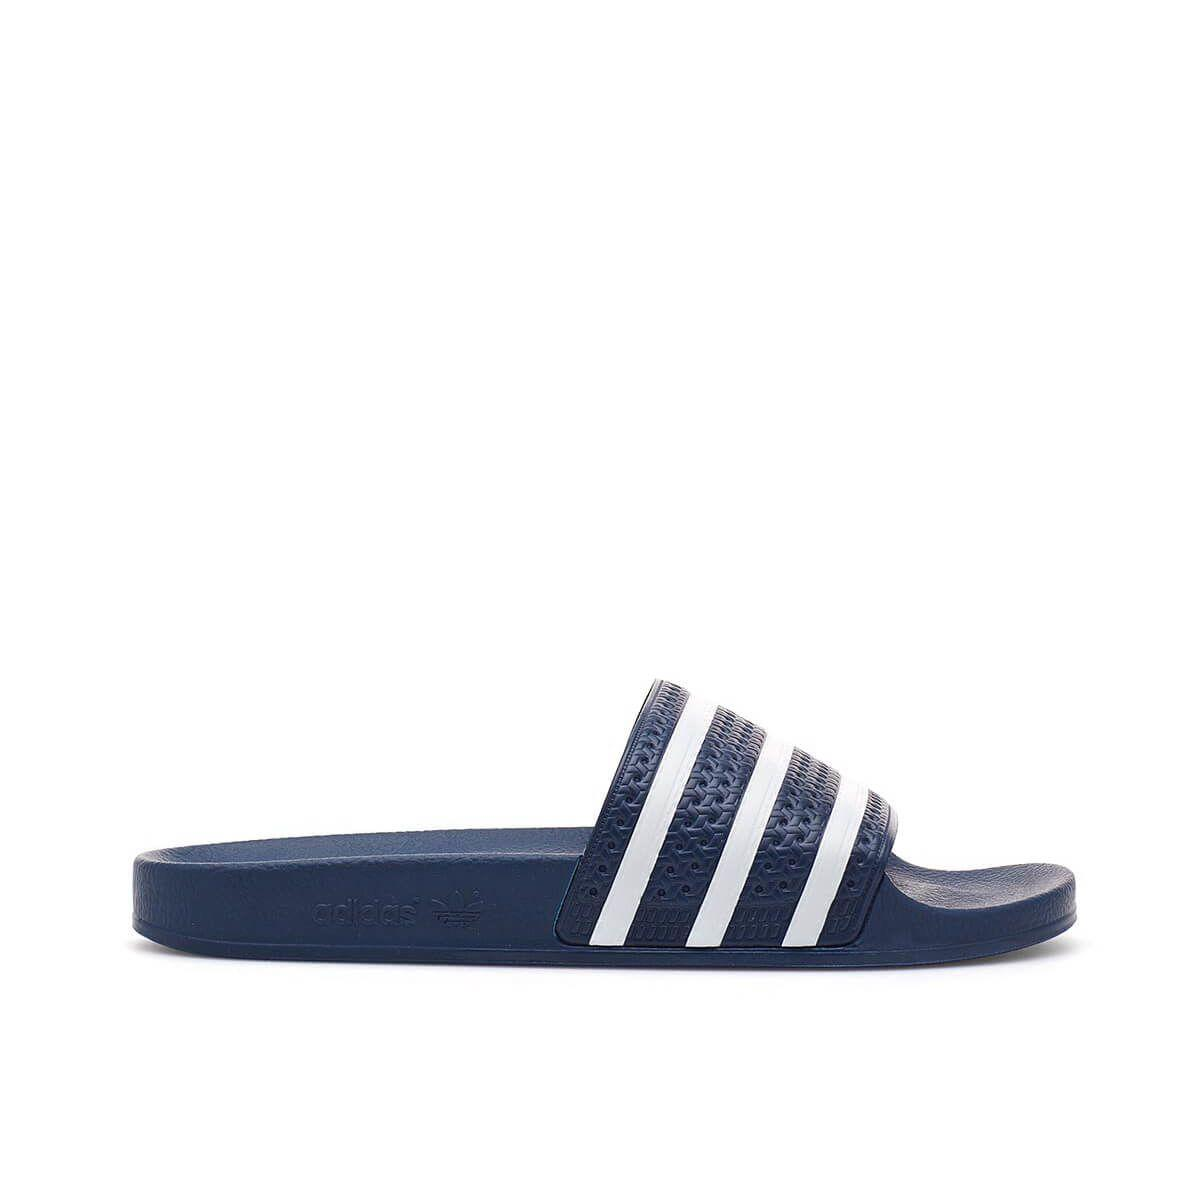 0192631a0 Adidas Originals Adilette Slider Sandals In Navy And White - Navy In Blue